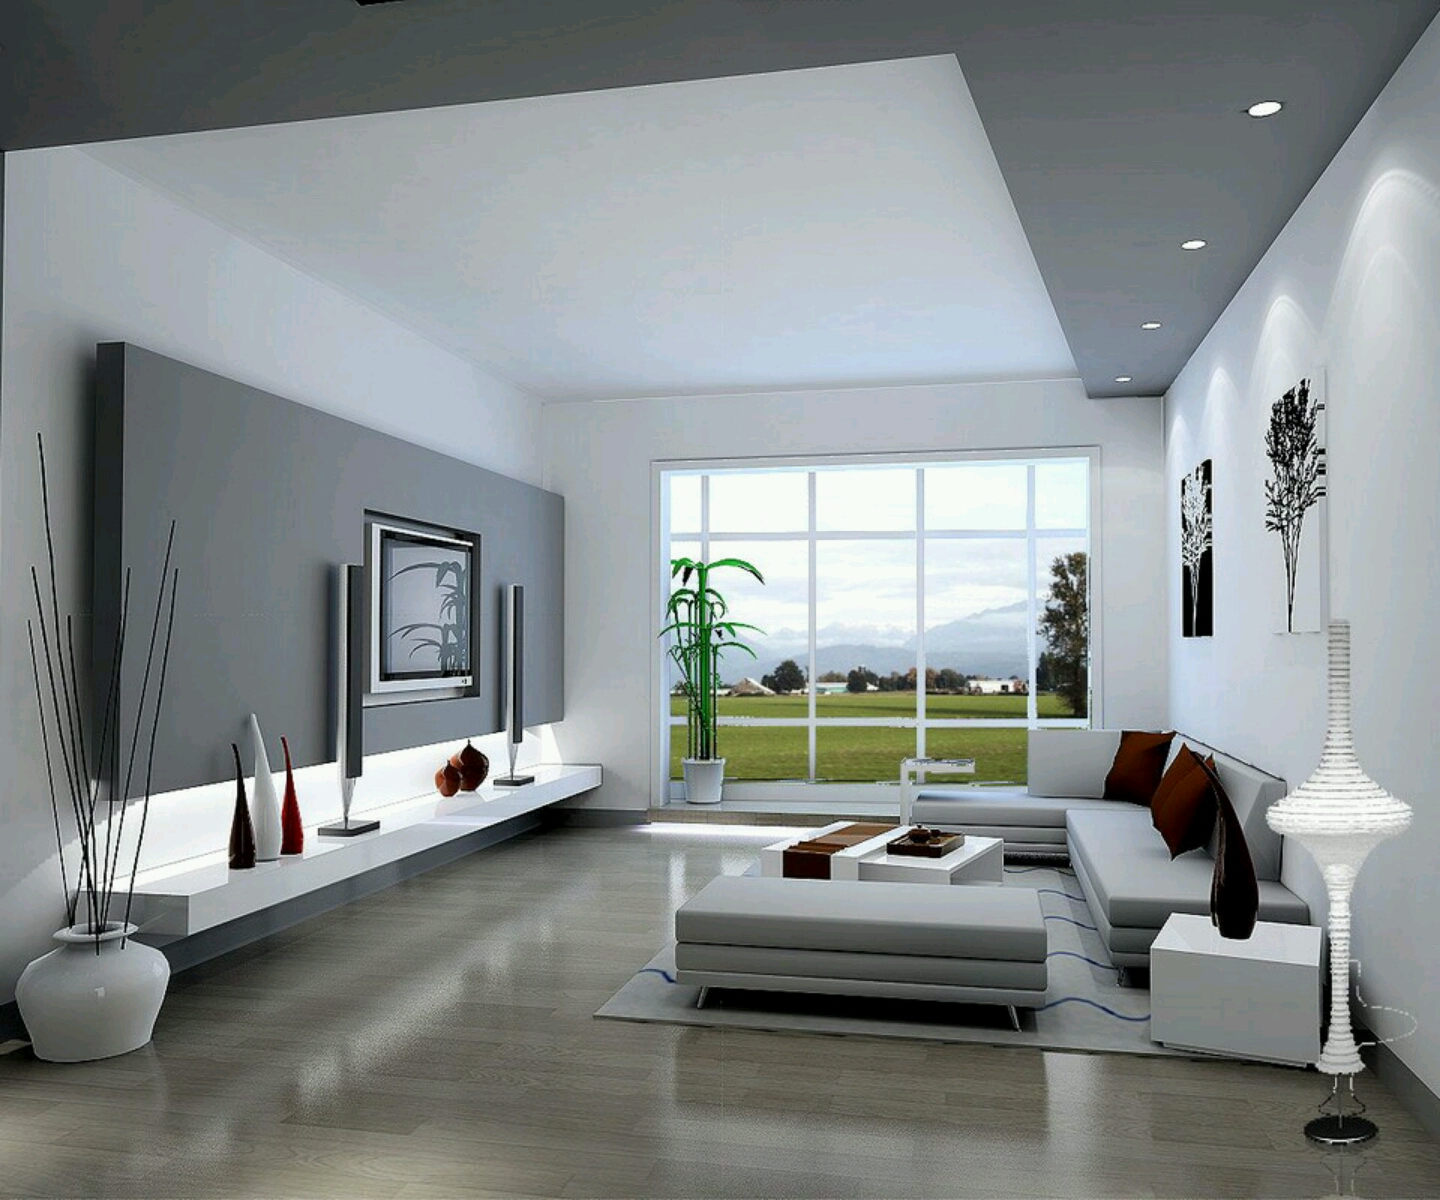 New home designs latest modern living rooms interior for New room interior design